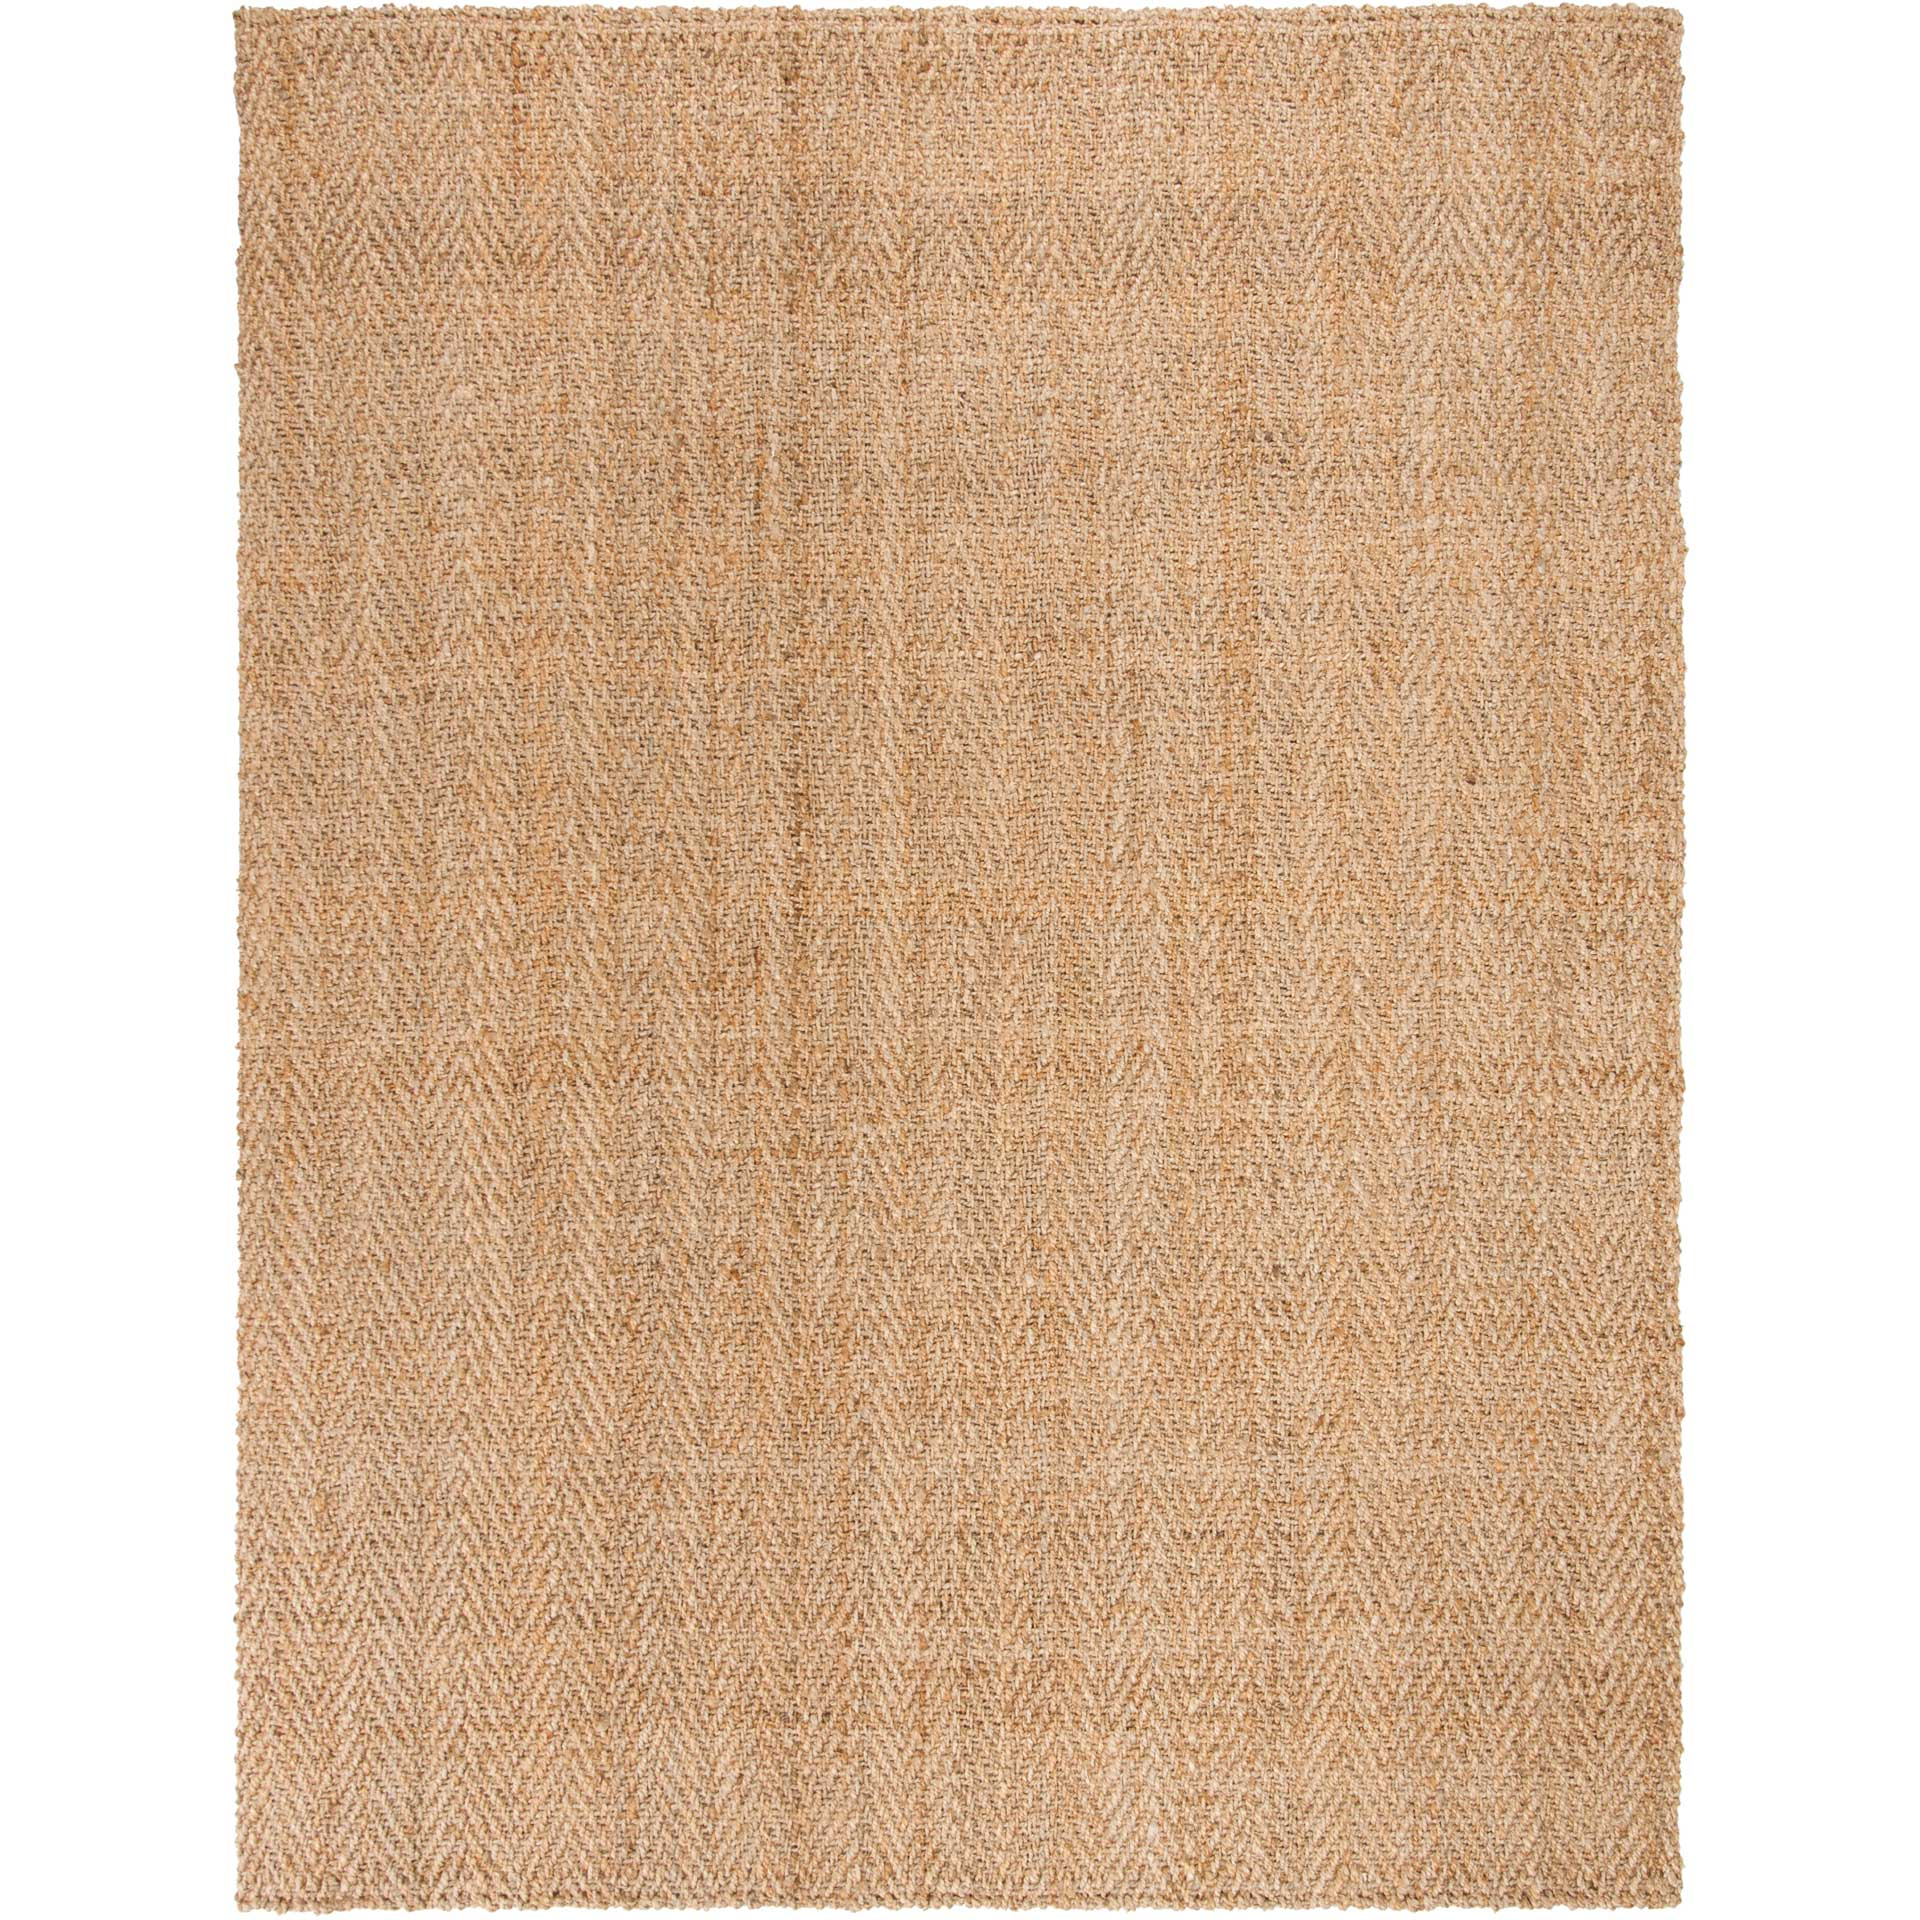 Natural Fiber Chevron Natural Area Rug